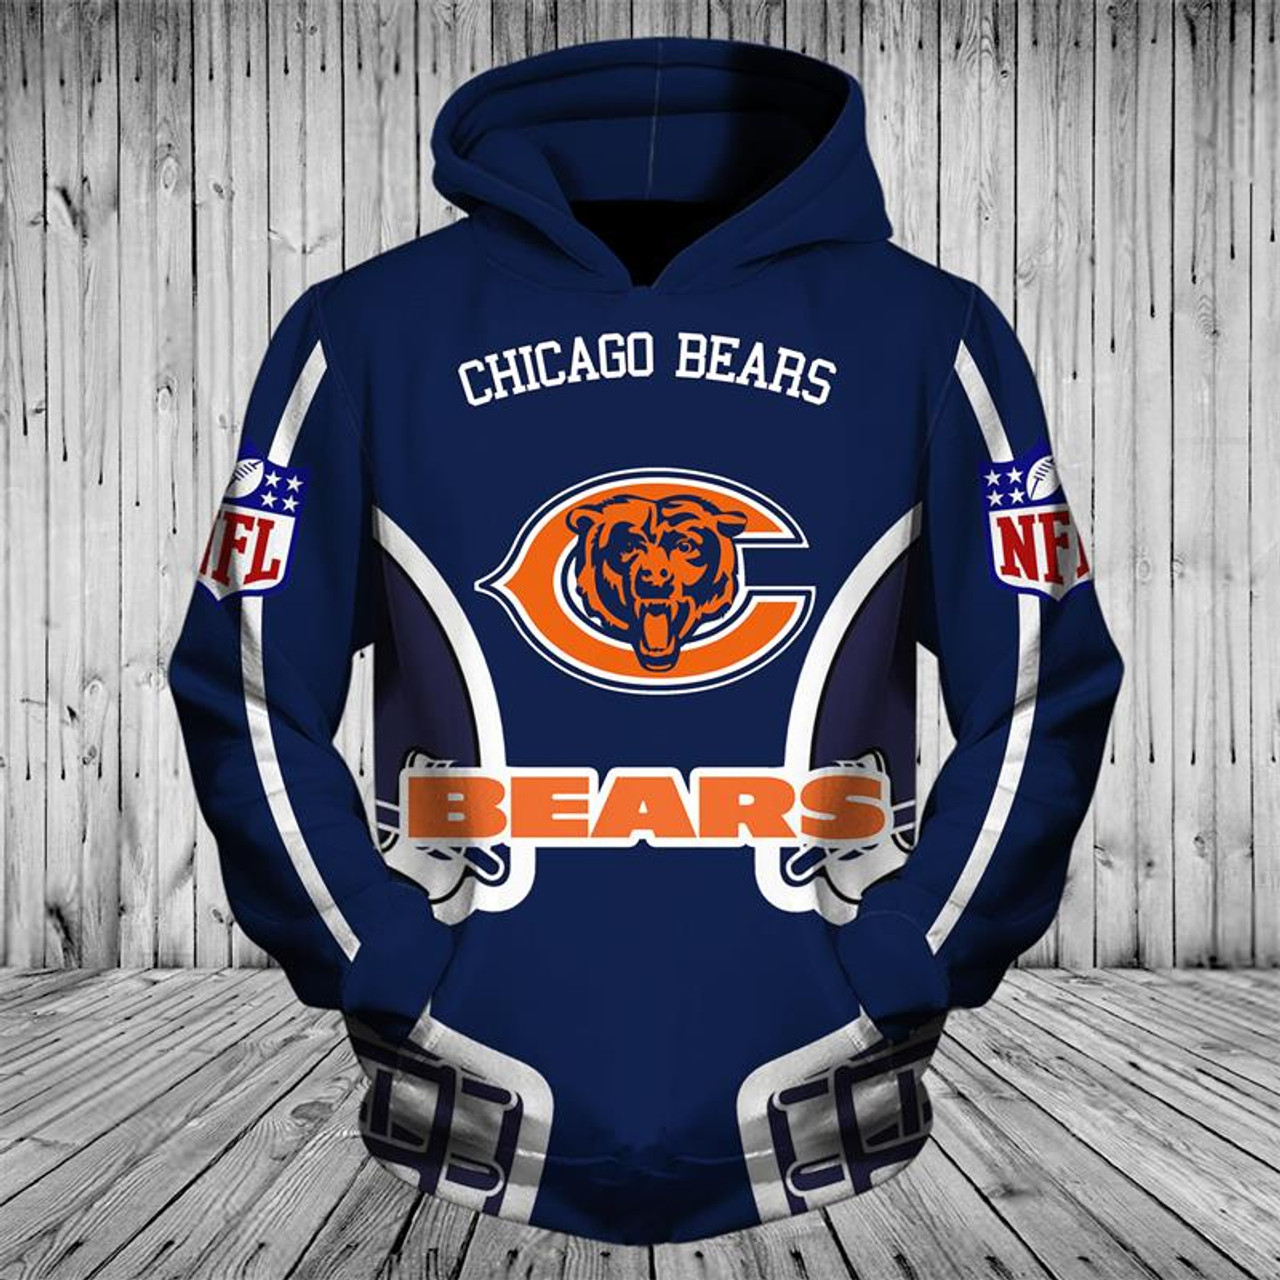 outlet store 6e8a6 ad2f1 **(OFFICIALLY-LICENSED-N.F.L.CHICAGO-BEARS-TRENDY-PULLOVER-POCKET-HOODIES/CUSTOM-ALL-OVER-GRAPHIC-3D-PRINTED-IN-BEARS-TEAM-LOGOS  & ...